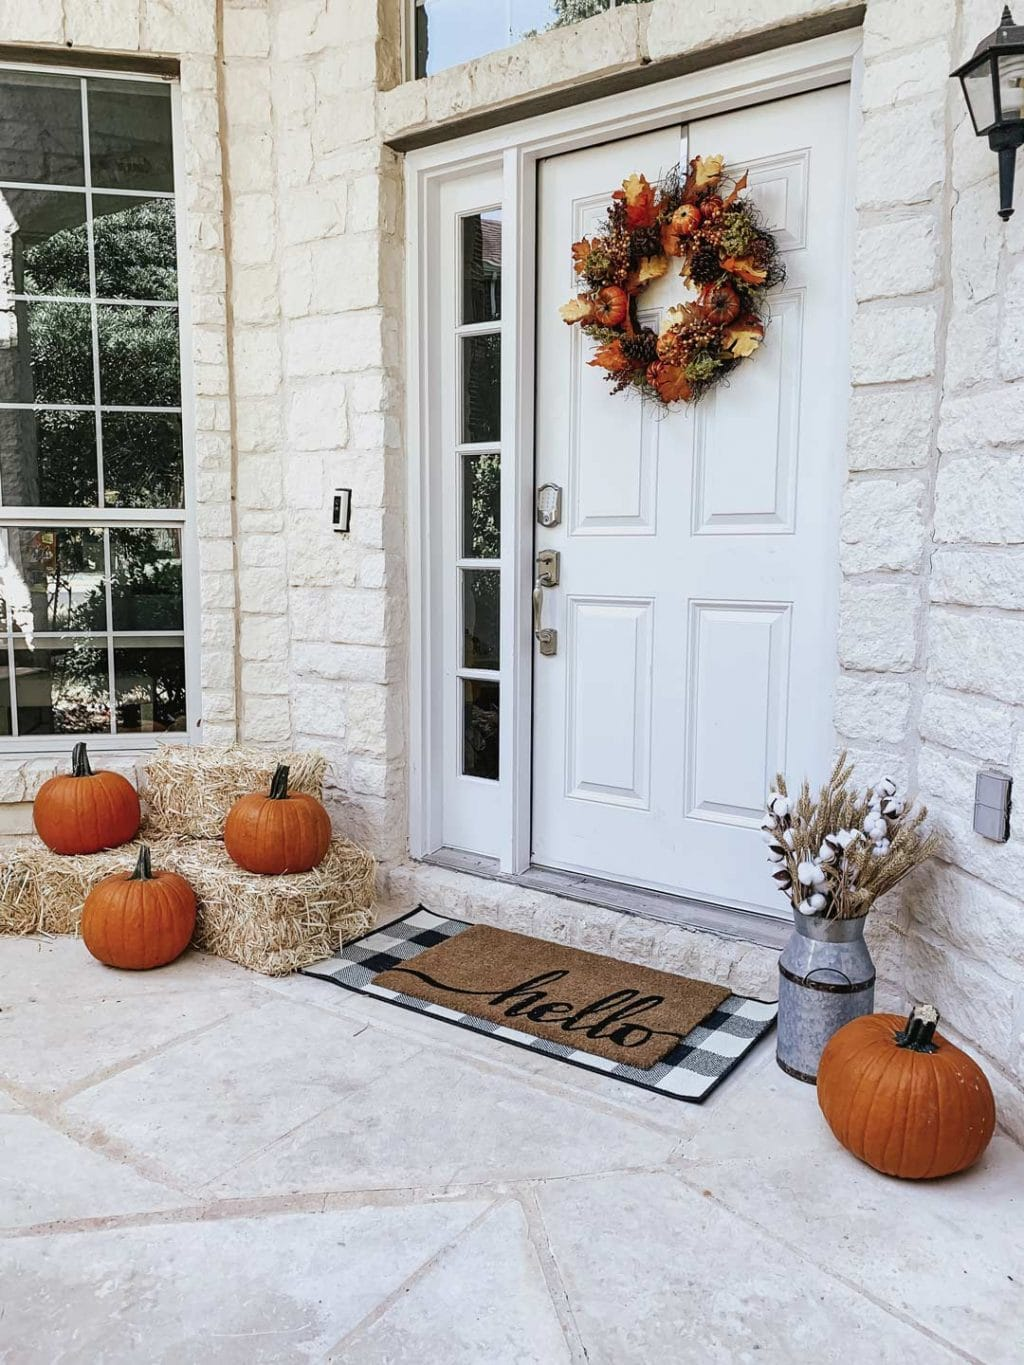 Walmart Decorations For Living Room: Fall Front Porch Decor From Walmart